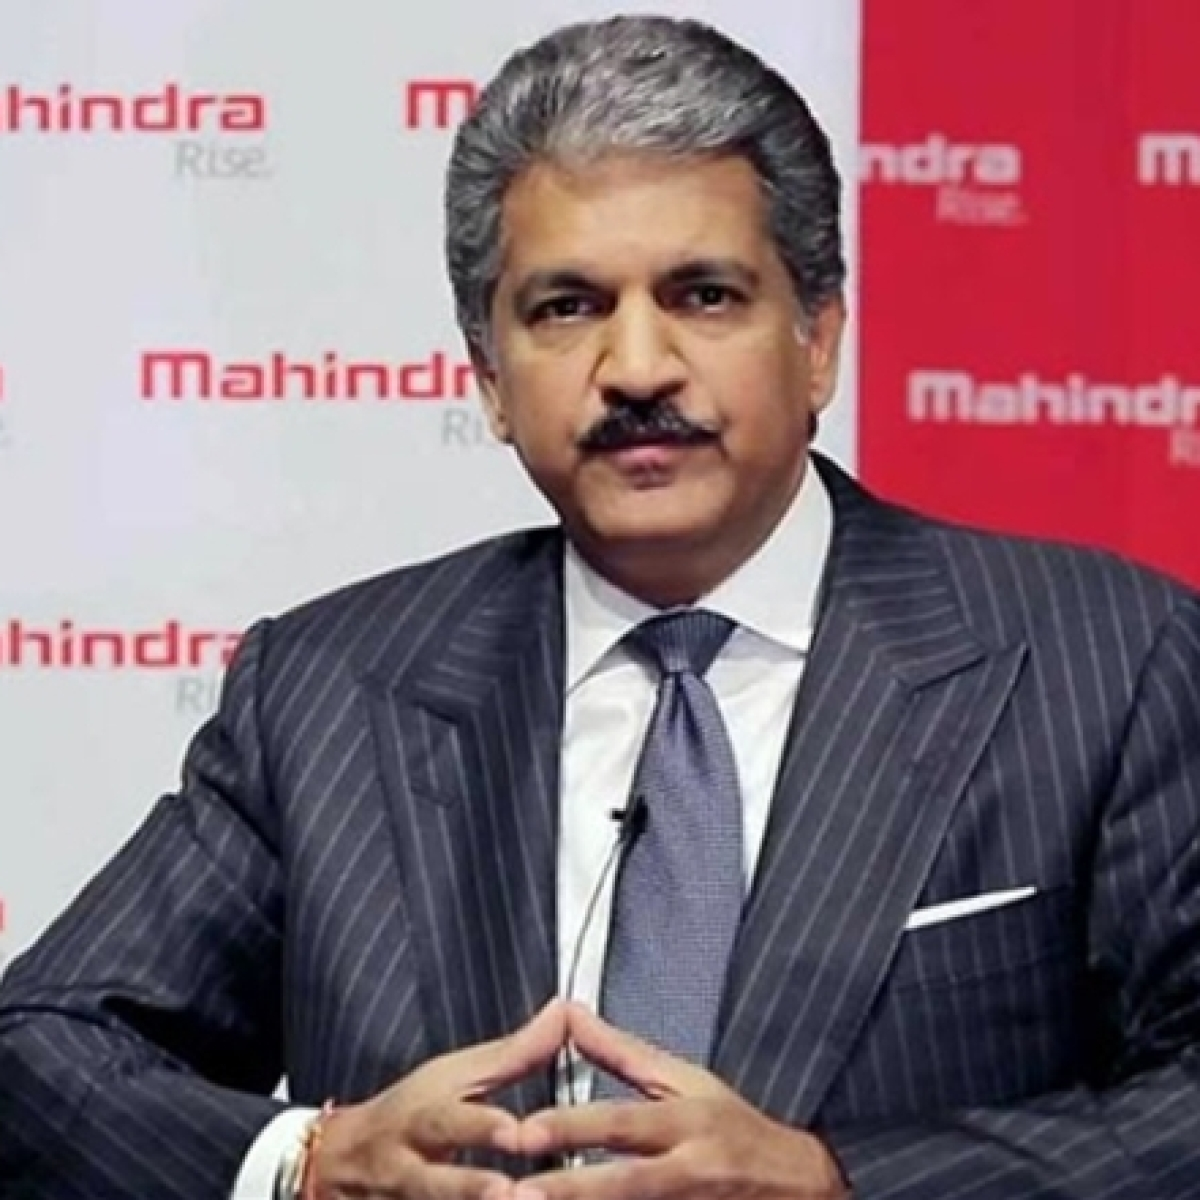 India will be risking economic hara-kiri, if lockdown extended for much longer: Anand Mahindra